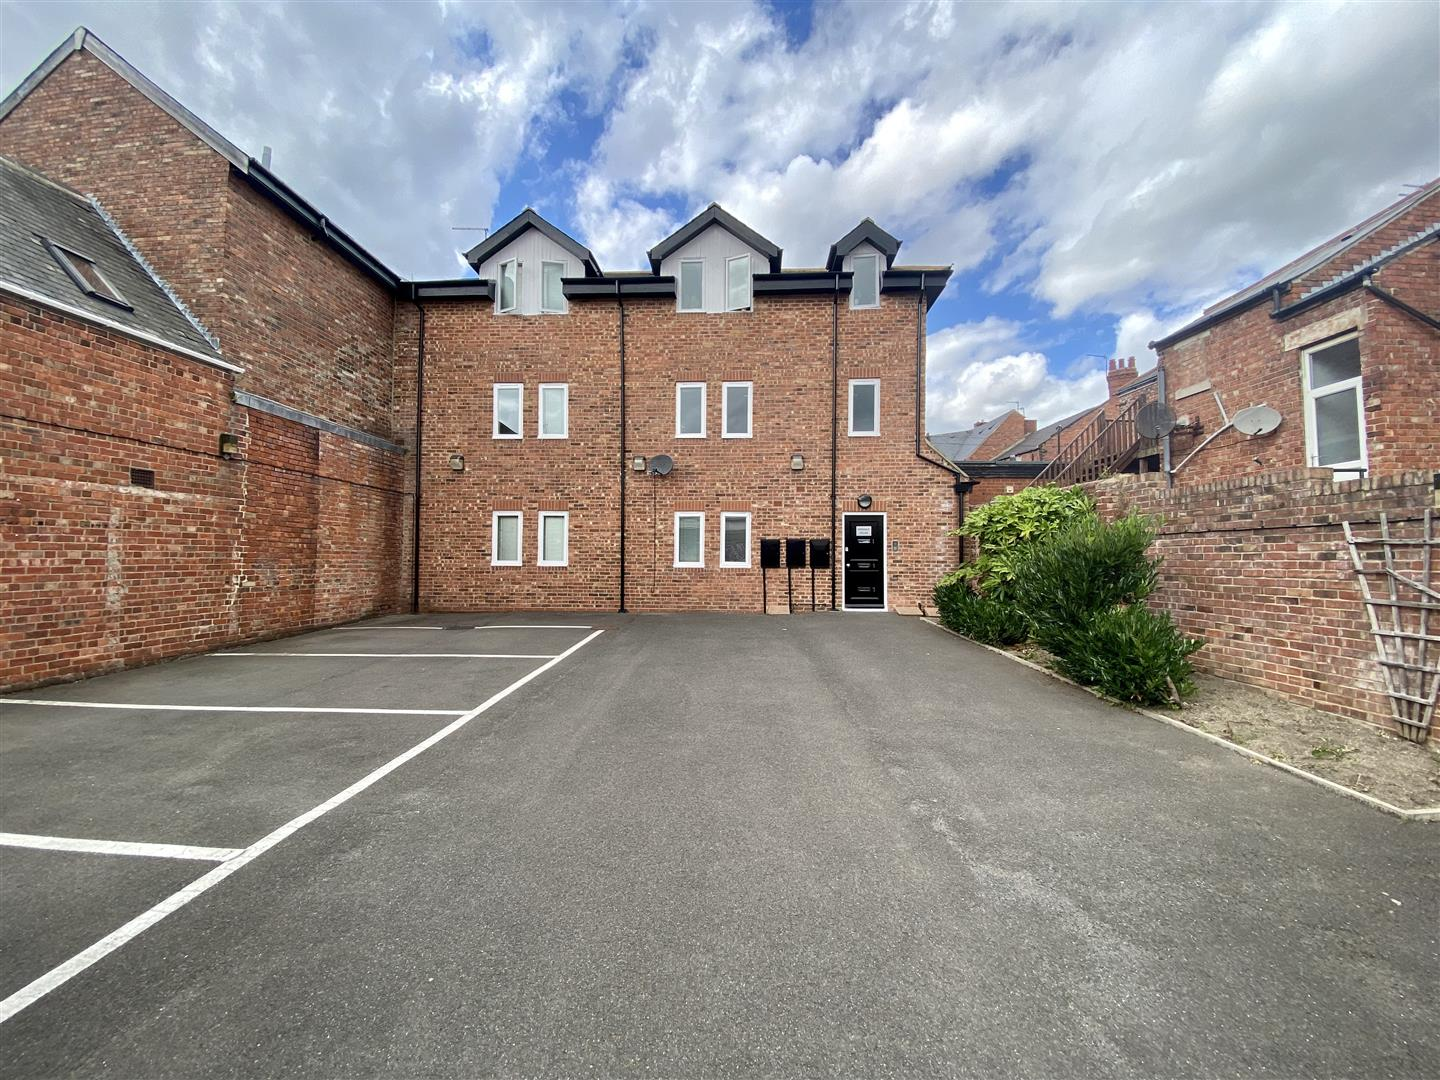 Dinsdale Place Newcastle Upon Tyne, 17 Bedrooms  Block of flats ,Sold (STC)